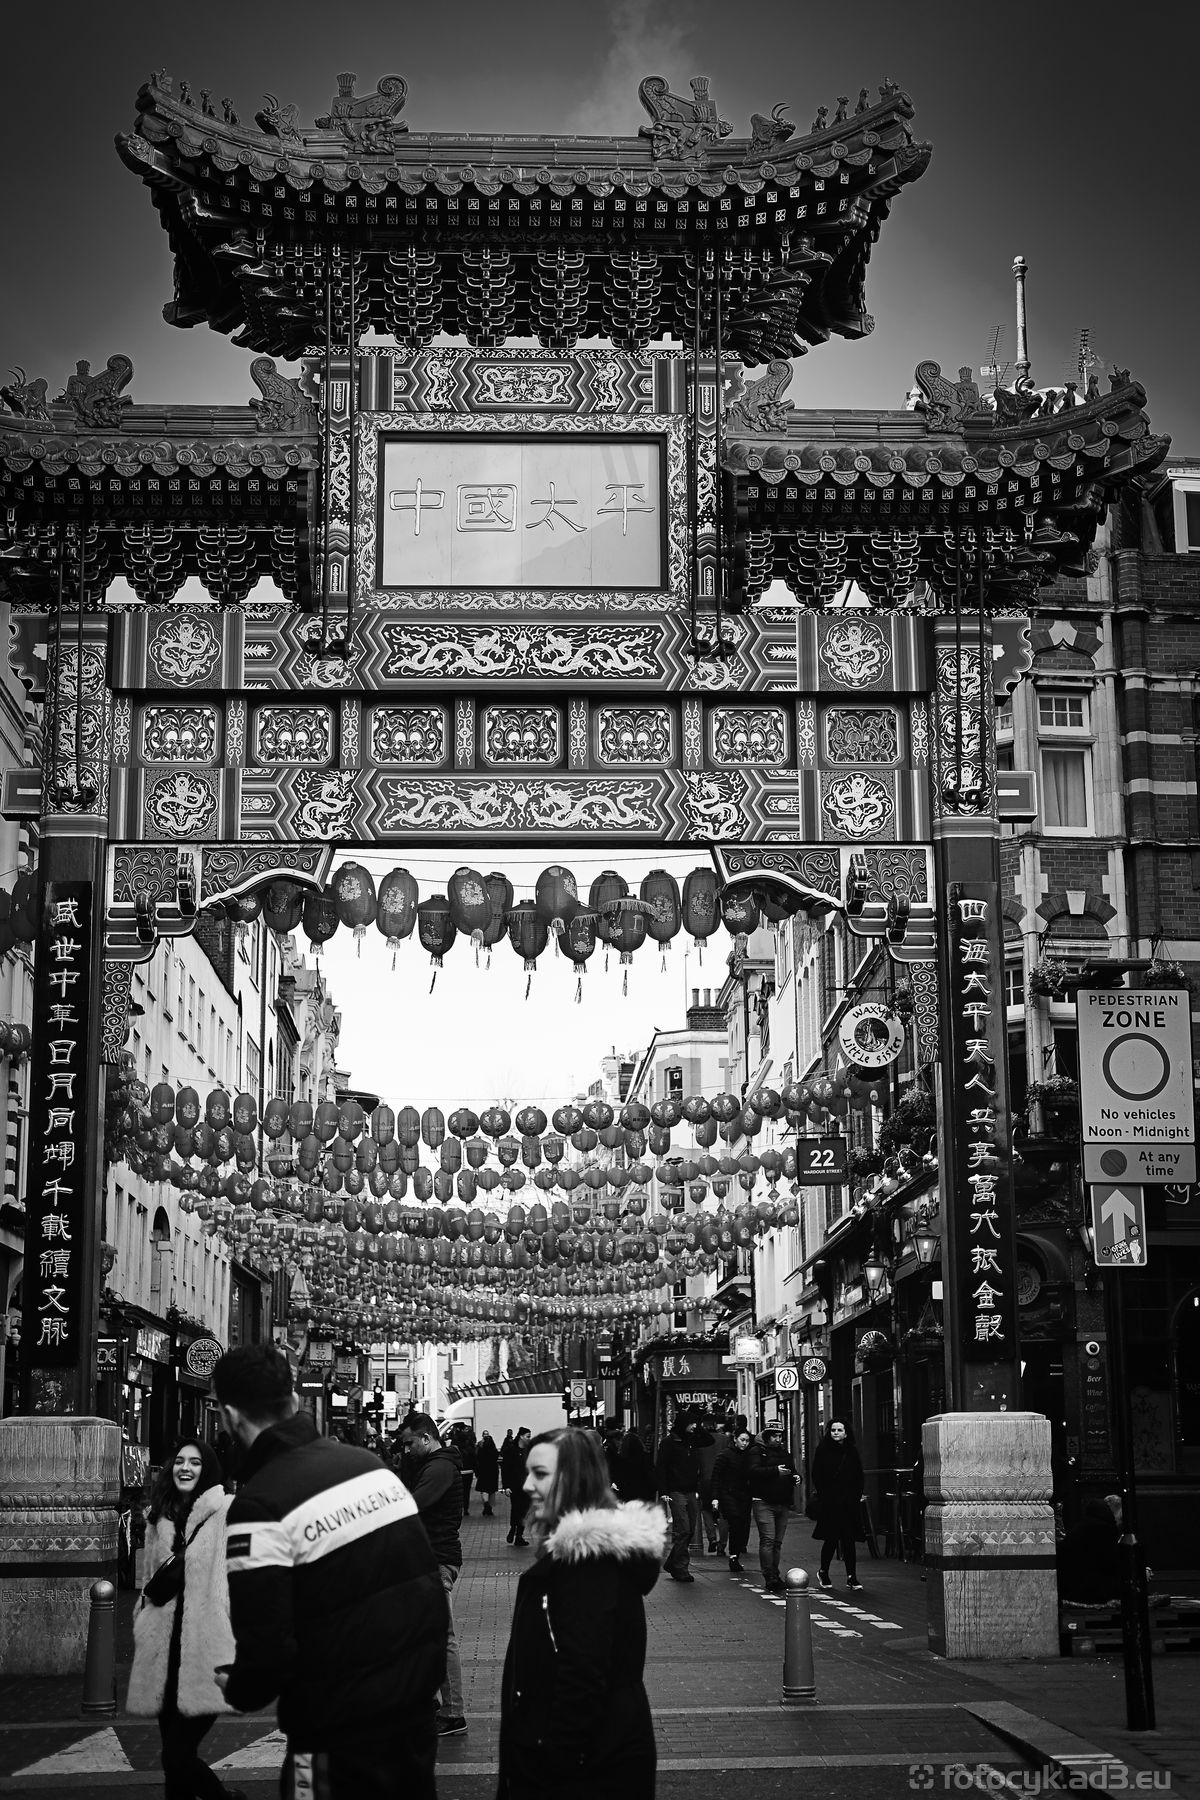 Wejście do China Town